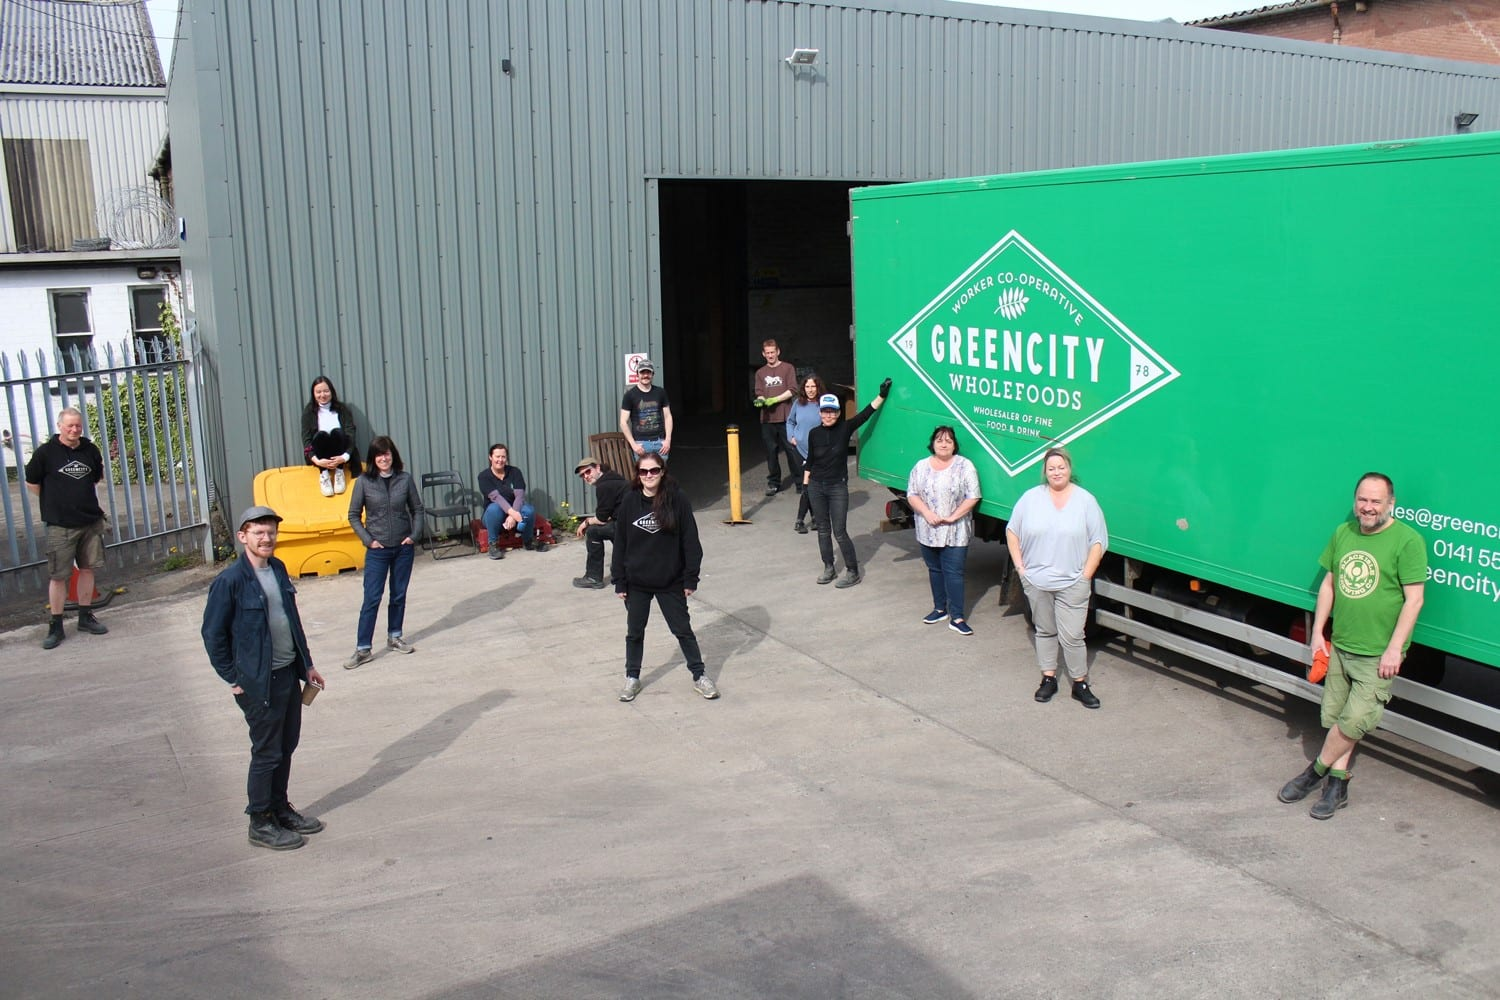 Image of Greencity Wholefoods warehouse, lorry and staff